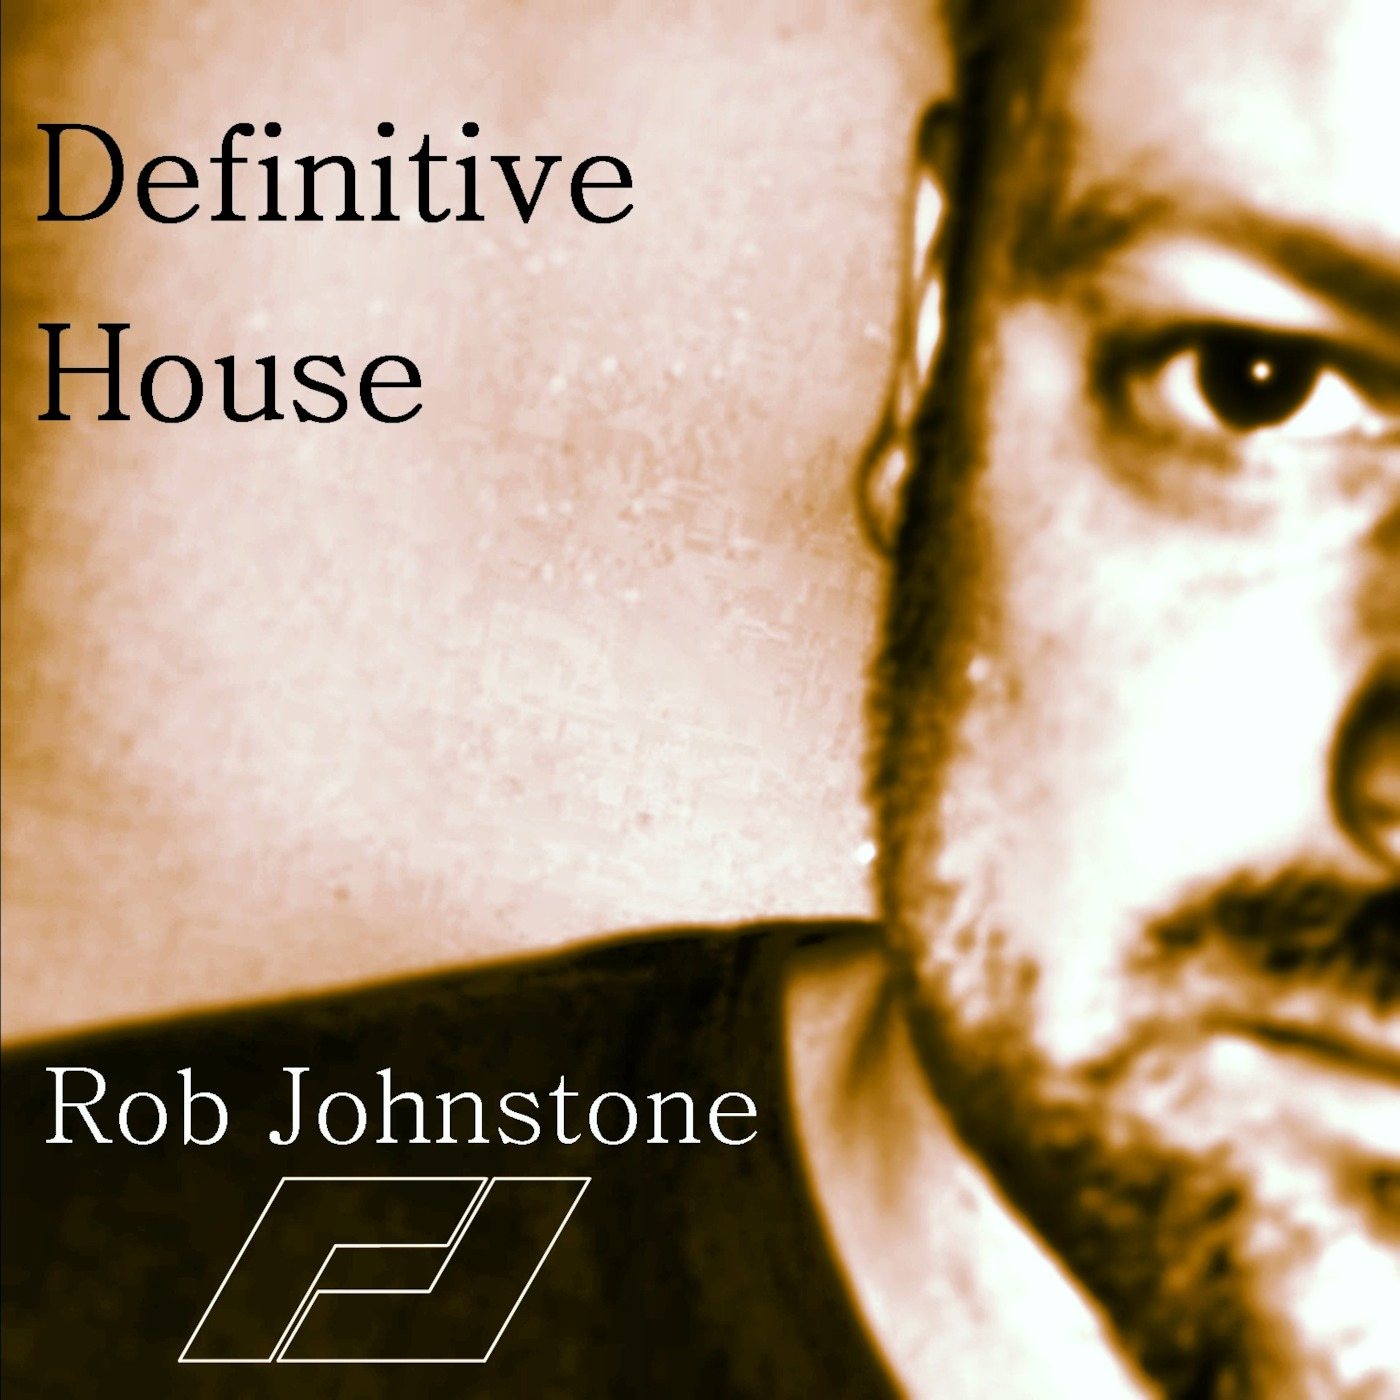 Rob Johnstone Definitive House.